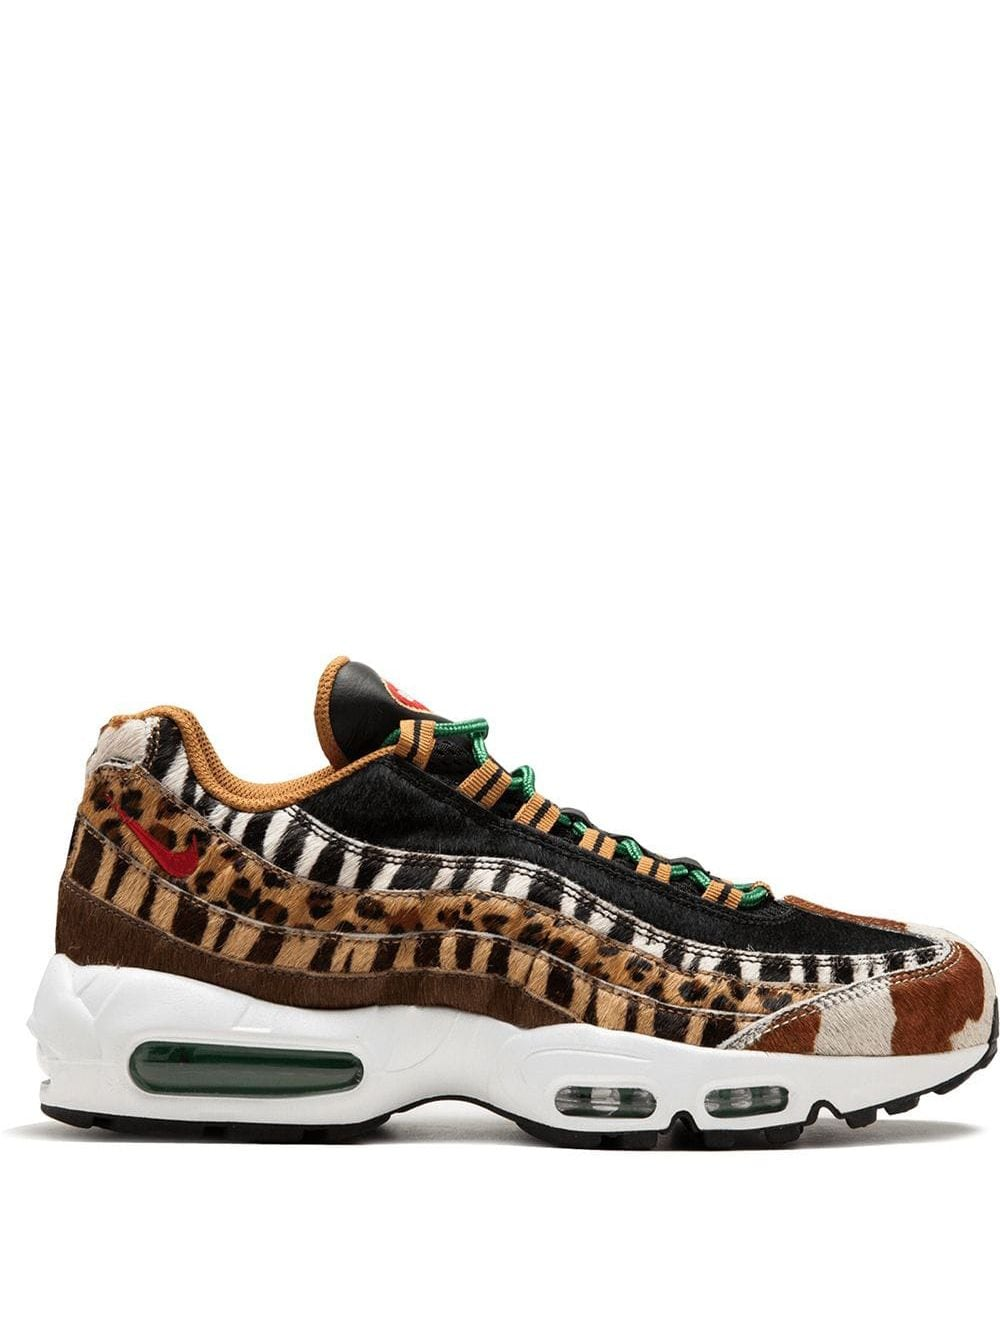 free shipping 1fdff 0fd26 Nike  Air Max 95 DLX  Sneakers - Nude von Nike